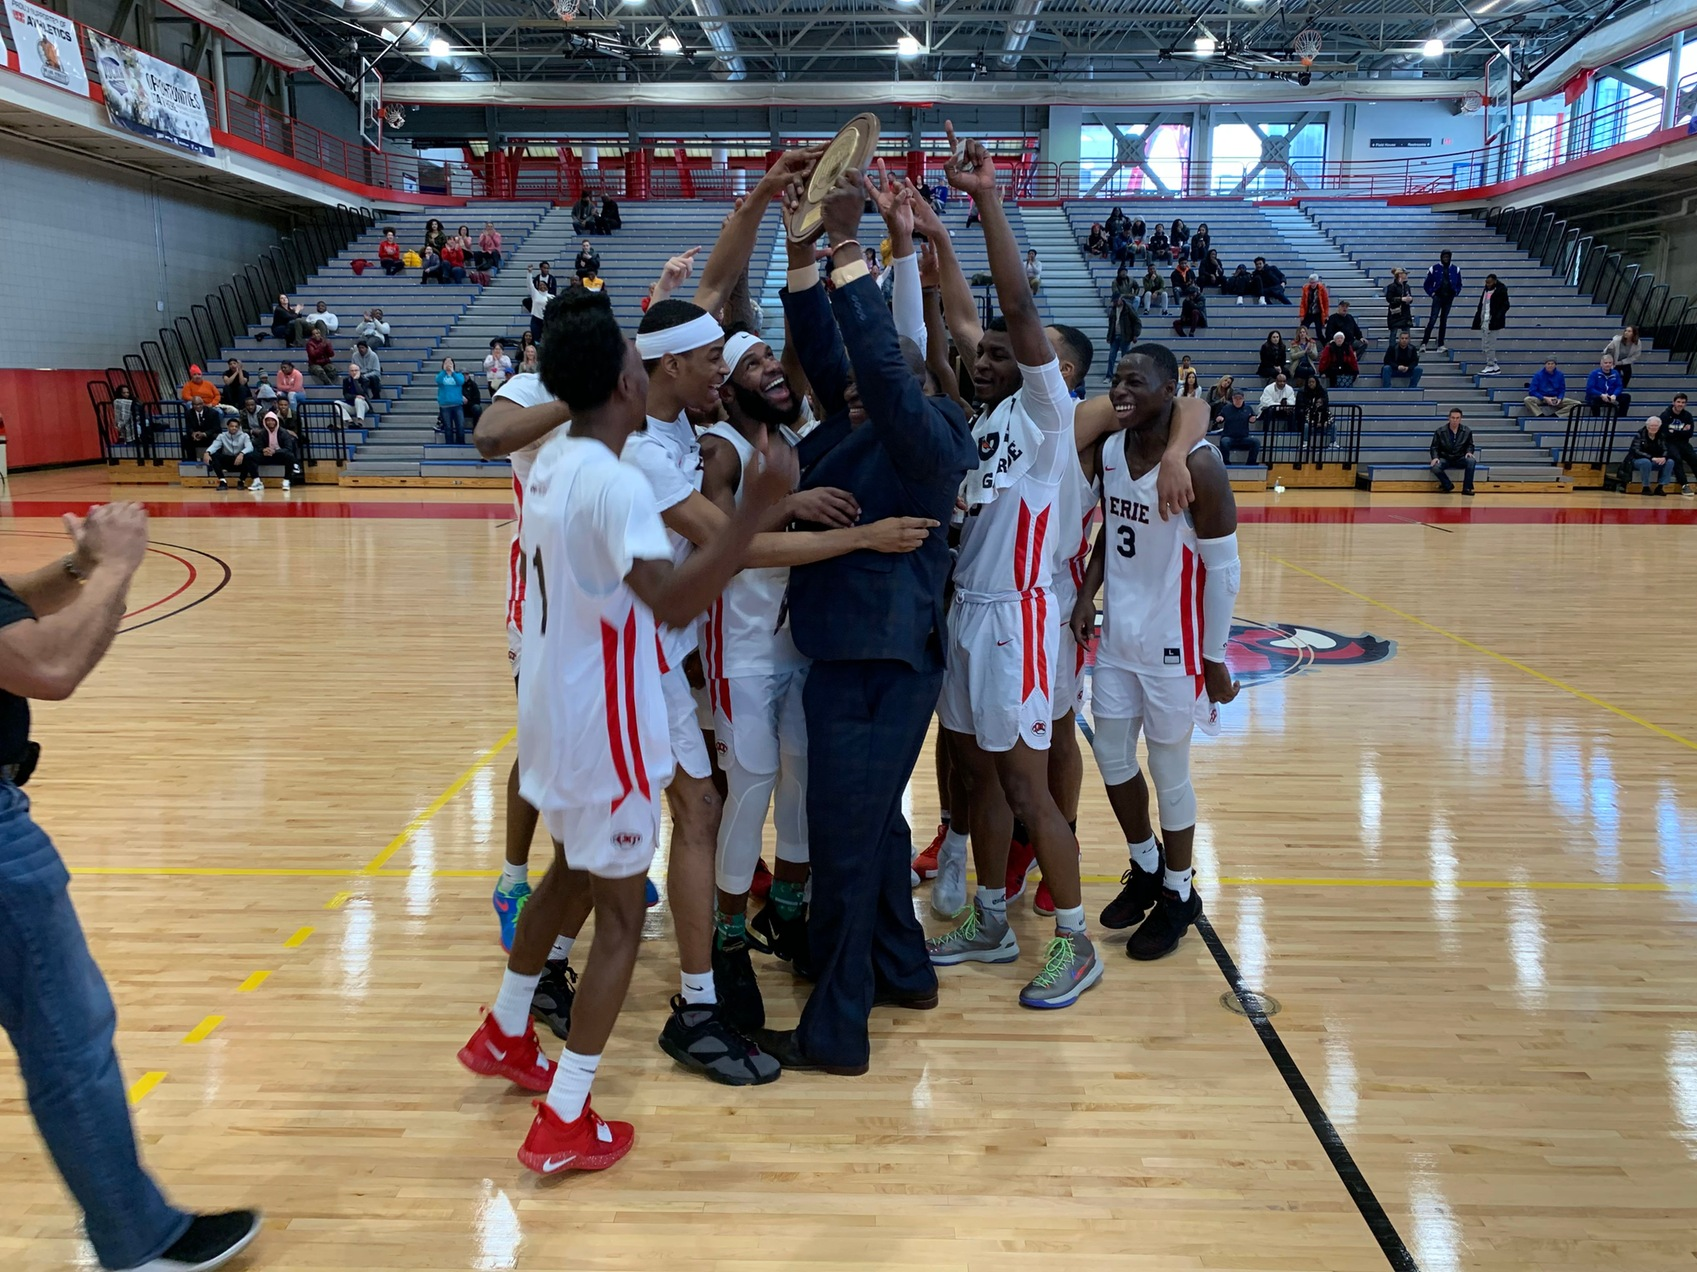 Men's Basketball Claims Region 3 Div. 2 Championship With Win Over NCCC